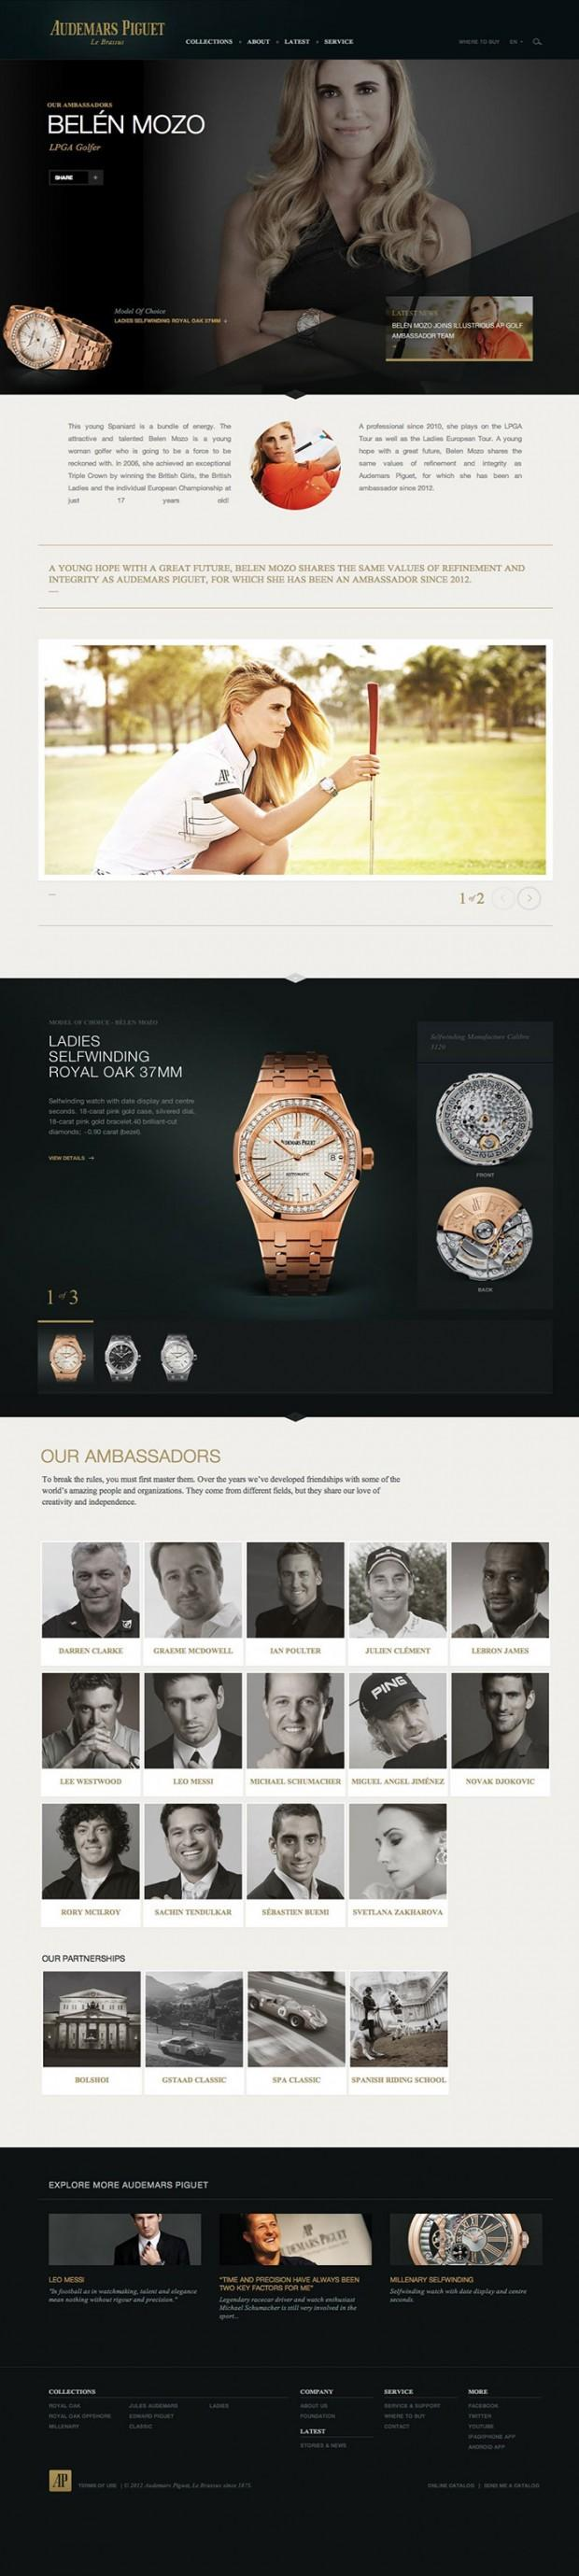 Best About Pages – Showcasing the best of the best about pages on the web » Audemars Piguet